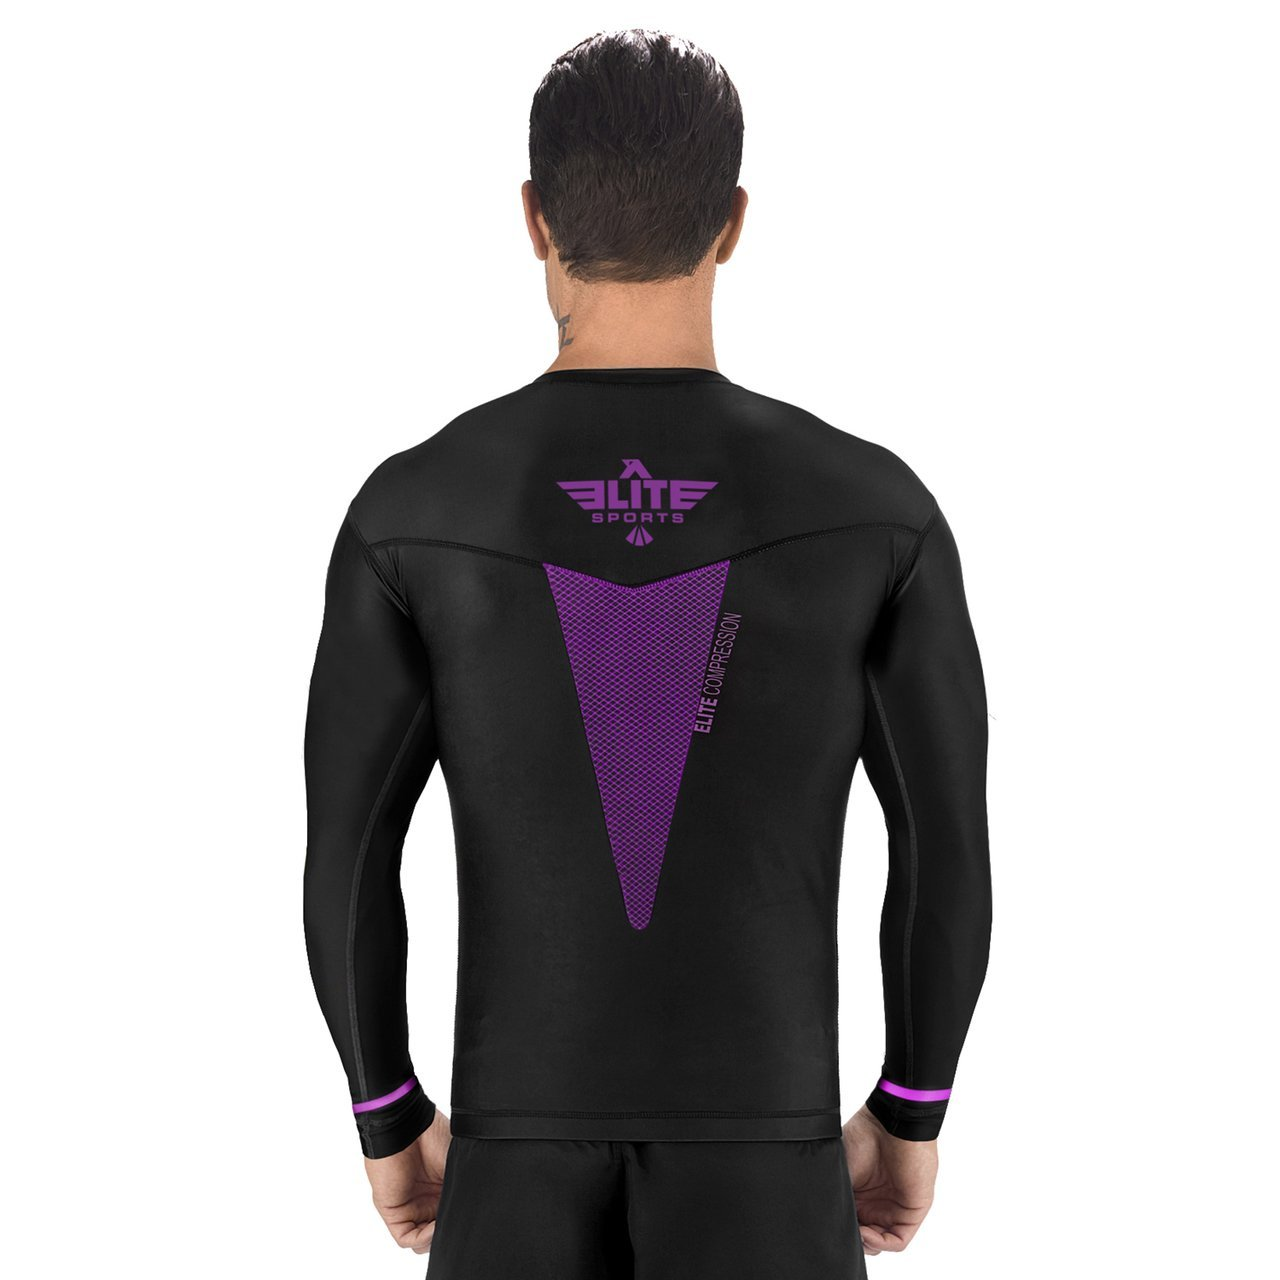 Load image into Gallery viewer, Elite Sports Star Series Sublimation Black/Purple Long Sleeve Judo Rash Guard